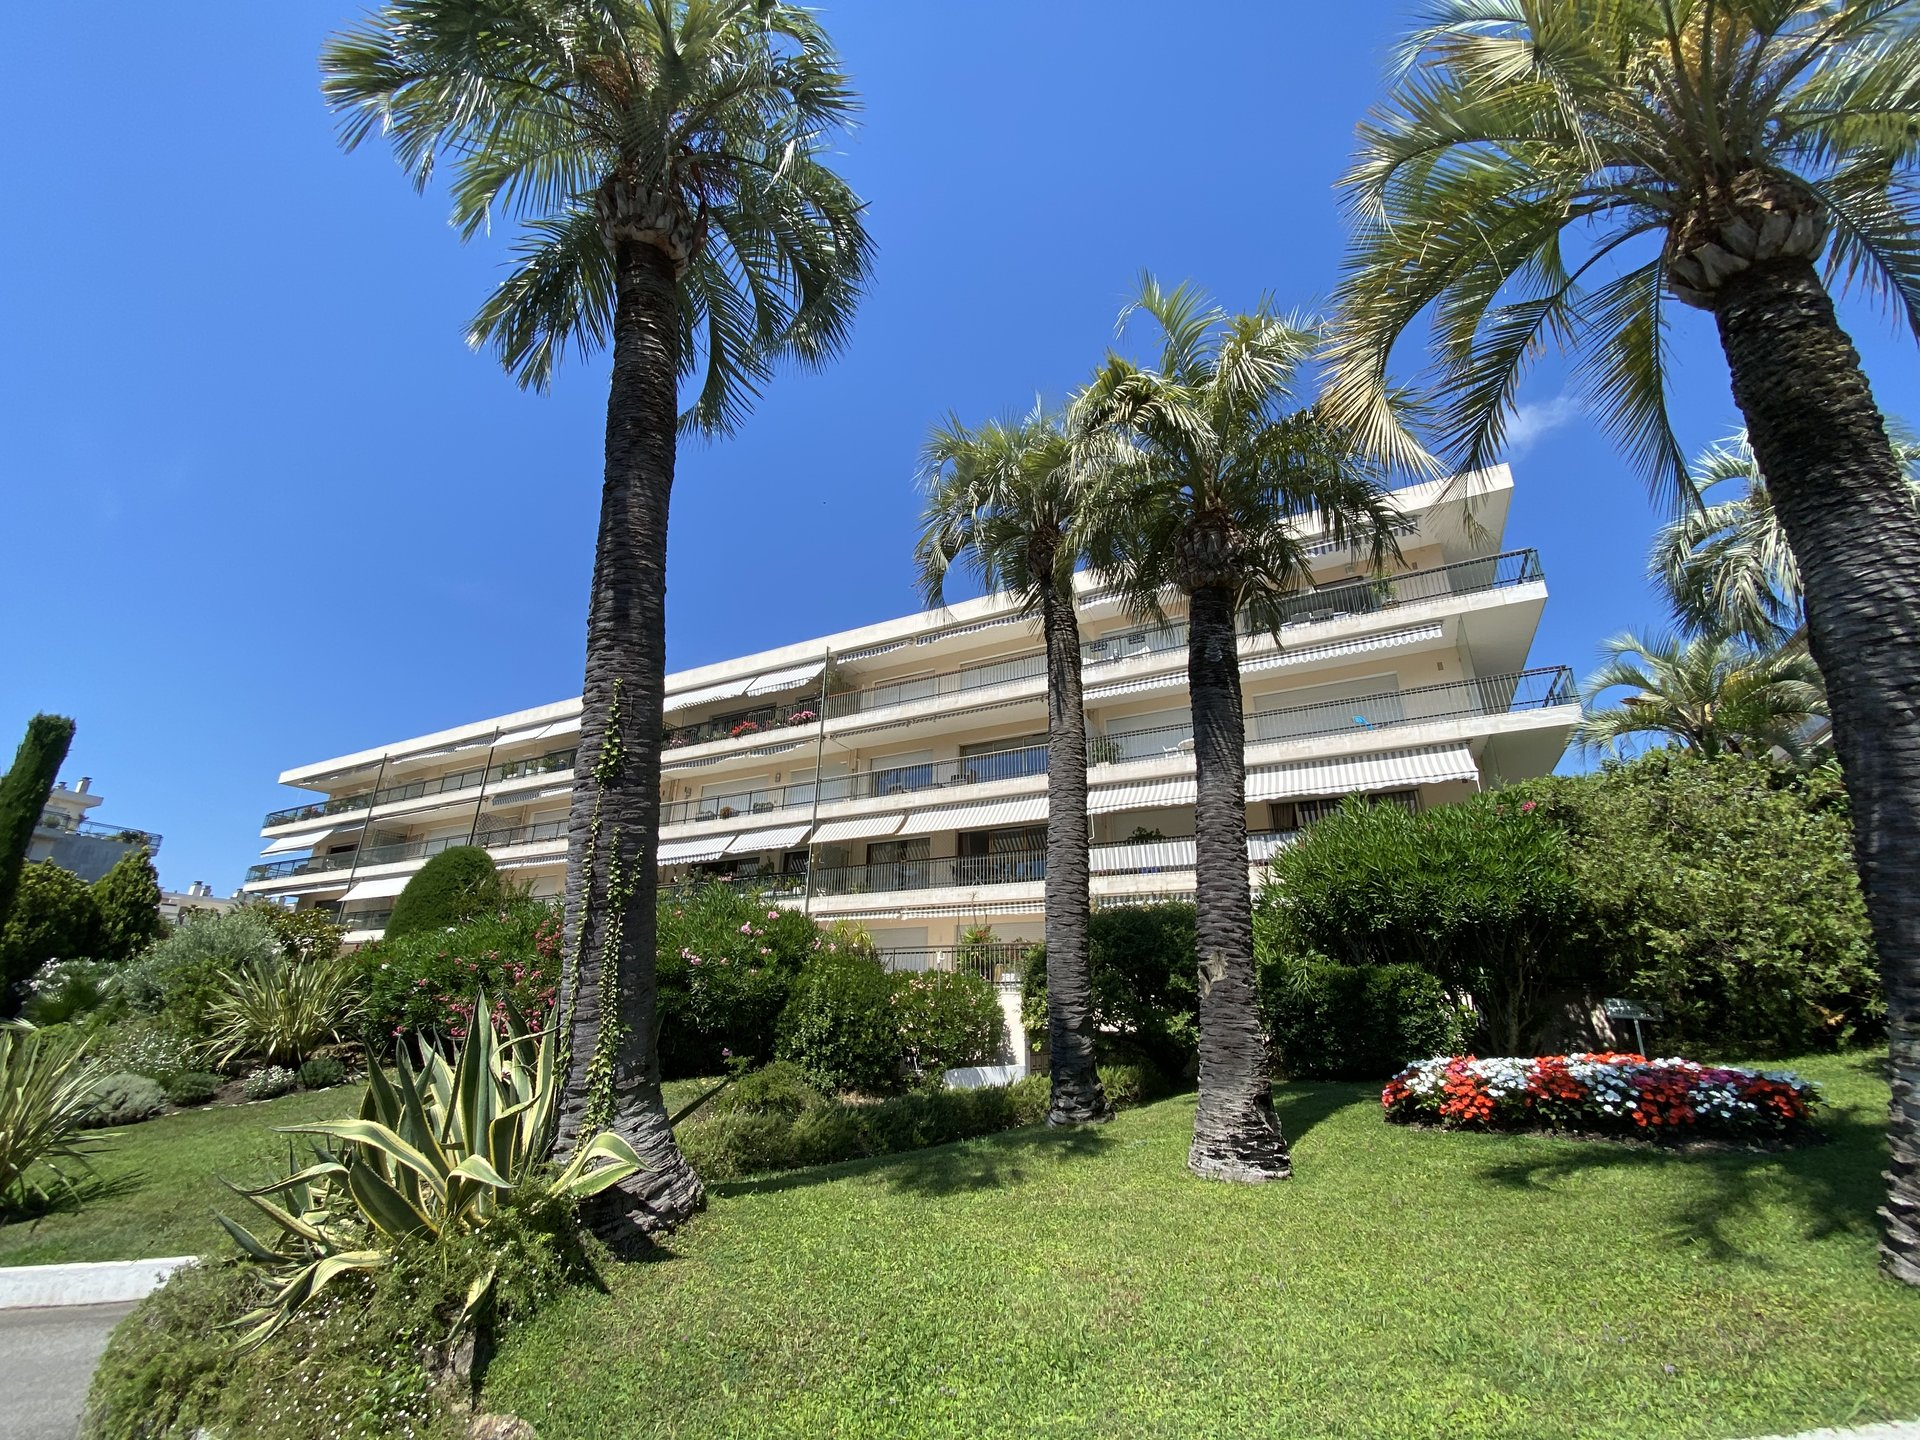 CANNES SALE 4 ROOMS STANDING RESIDENCE WITH SWIMMING POOL NEAR BEACHES